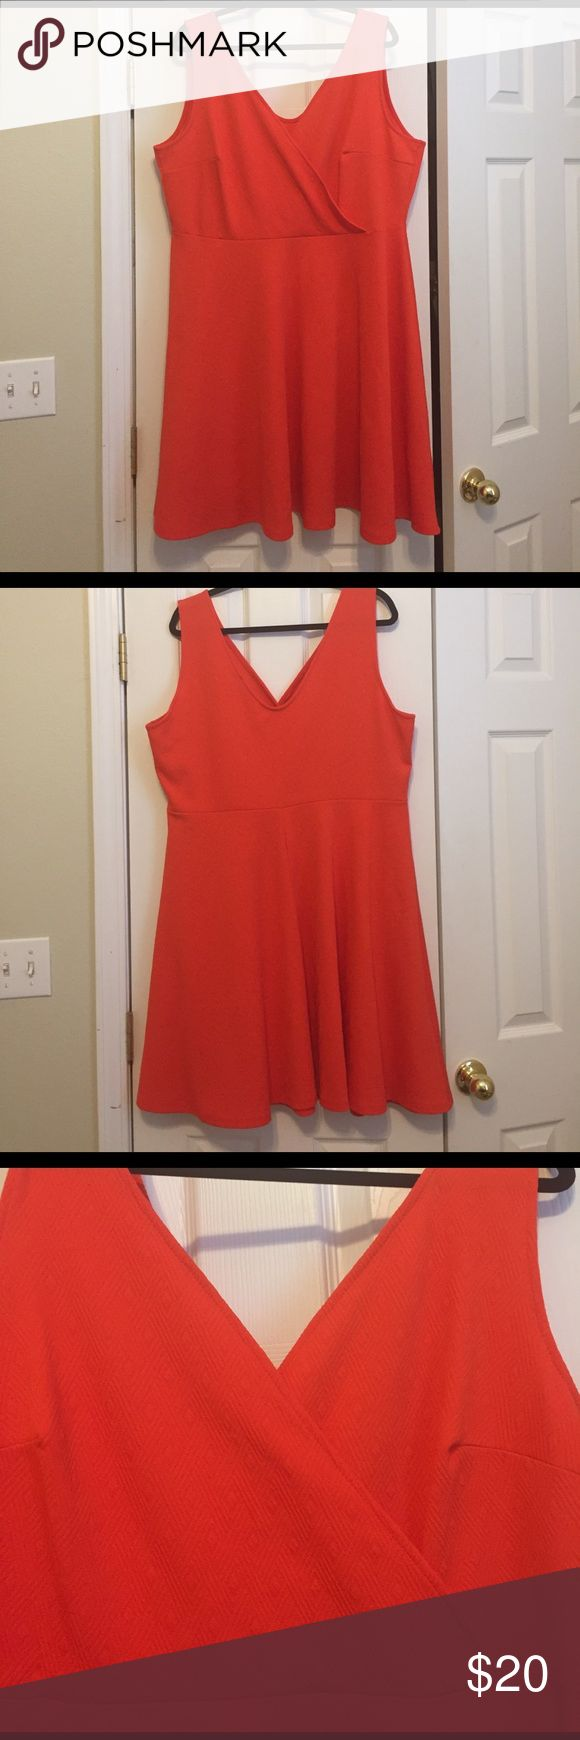 Soprano Dress--Size 3x Orange color Soprano Dress with faux wrap bust. Purchased from Macy's. Very flattering and light weight dress for spring! Unlined. Minor pen mark on front. No snags, picks or holes. Worn 2 times. Looks great with a cardigan, sparkly necklace and sandals! Soprano Dresses